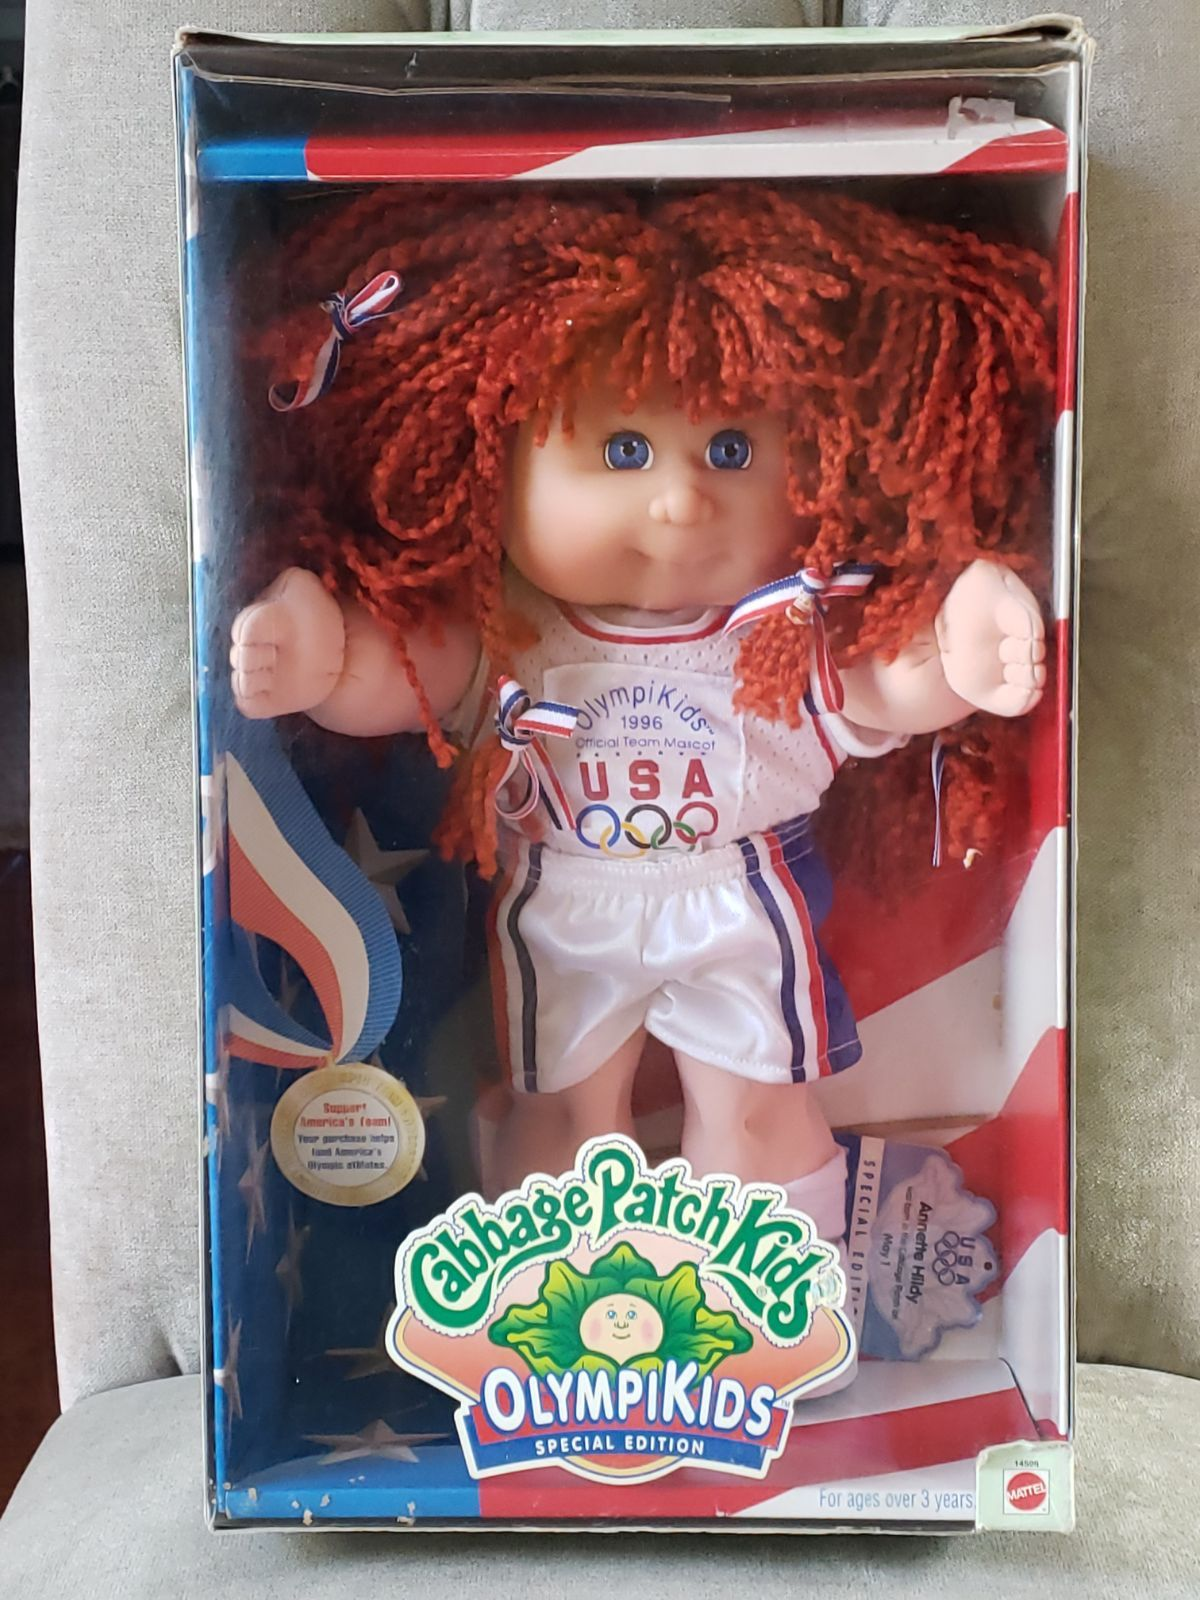 1996 Cabbage Patch Olympikids Special Edition Annette Hildy Basketball Cabbage Patch Kids Cabbage Patch Kids Dolls Cabbage Patch